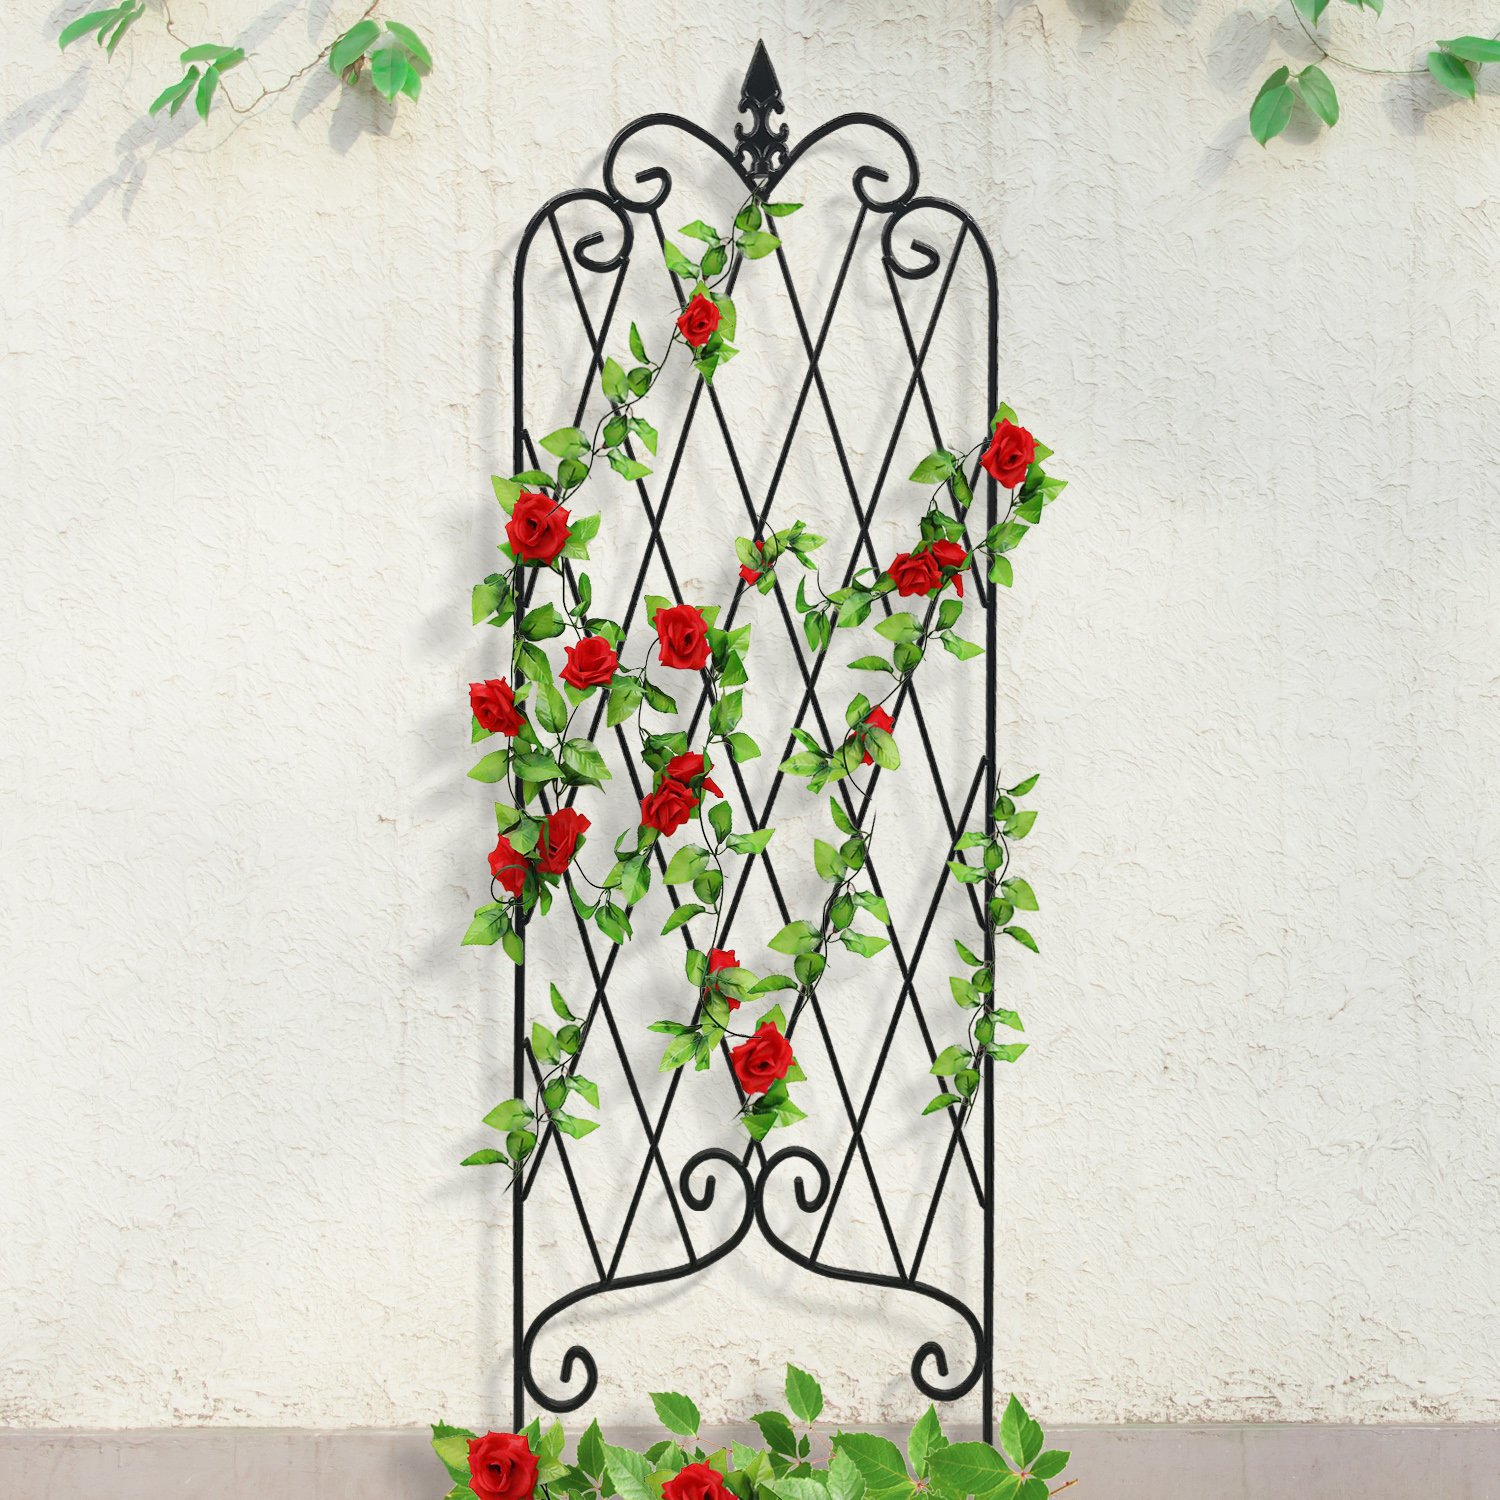 "Amagabeli Garden Trellis for Climbing Plants 47"" x 16"" Rustproof Black Iron Potted Vines Vegetables Vining Flowers Patio Metal Wire Lattices Grid Panels for Ivy Roses Cucumbers Clematis Pots Supports"